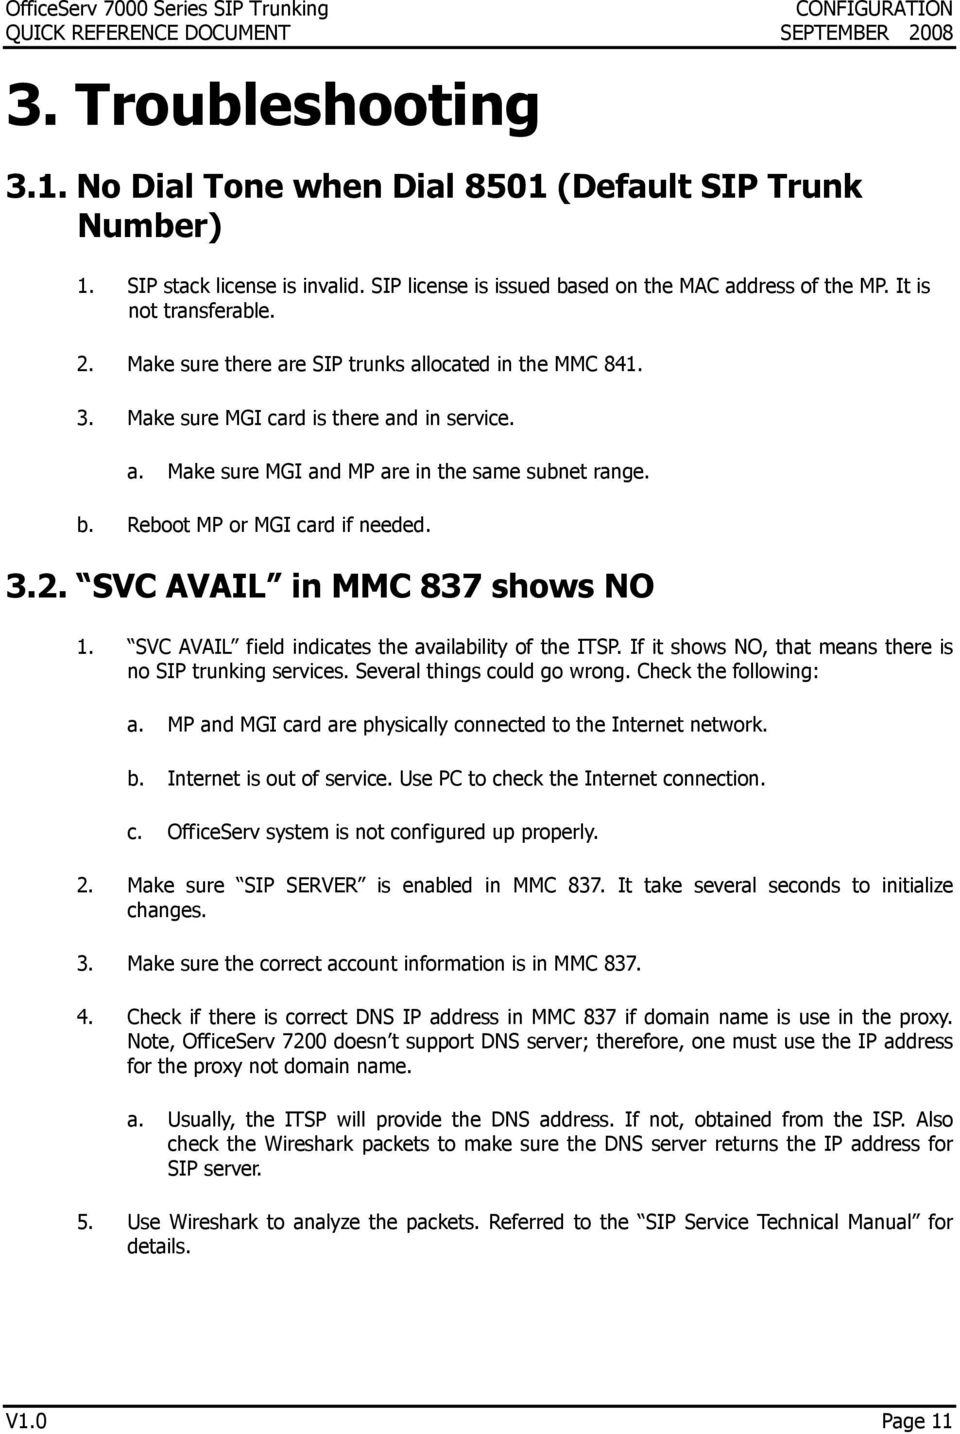 SVC AVAIL in MMC 837 shows NO 1. SVC AVAIL field indicates the availability of the ITSP. If it shows NO, that means there is no SIP trunking services. Several things could go wrong.